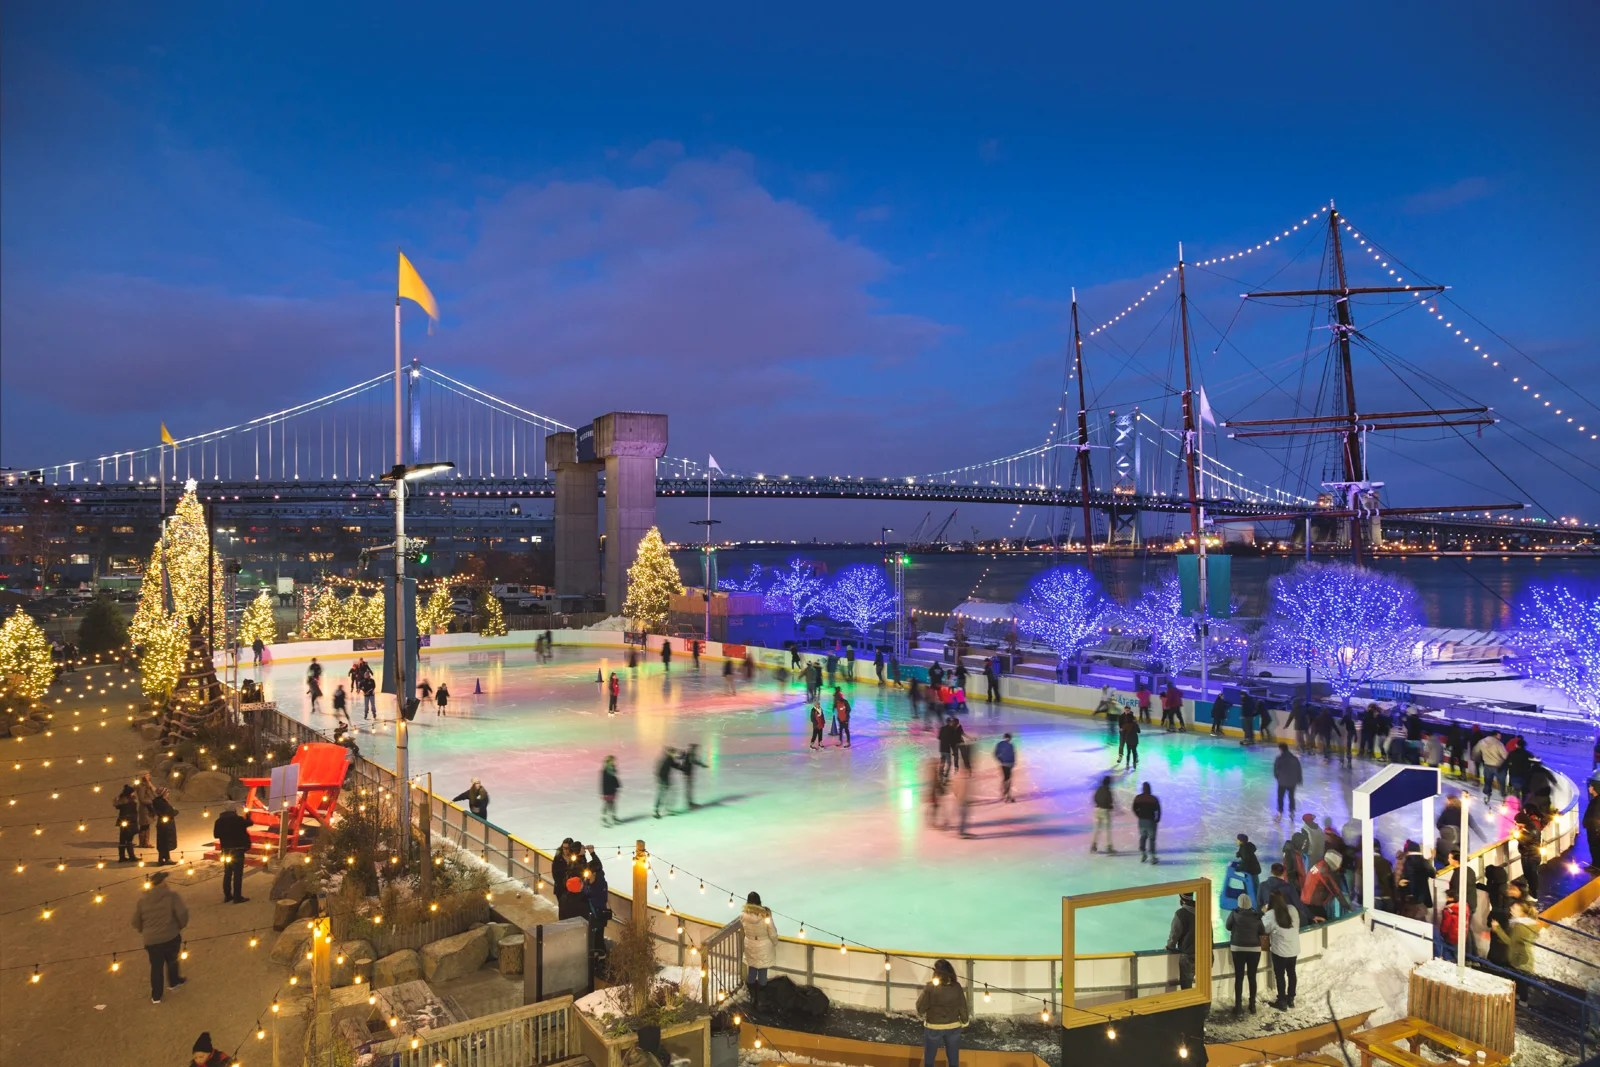 Ice Skaters at RiverRink at Winterfest at Penns Landing, Philadelphia, Pennsylvania. (Photo via Getty Images)